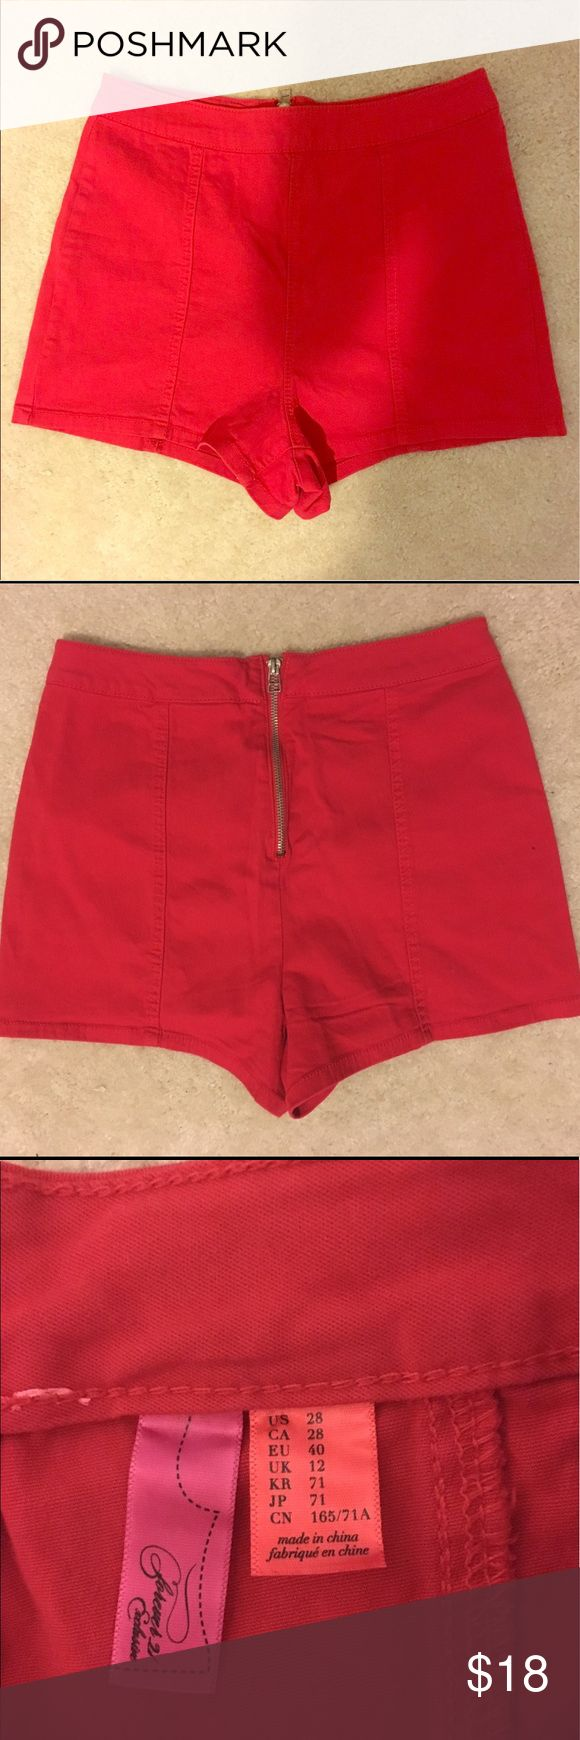 Red high waist short shorts Red high waist short shorts with zipper in the back. Cute and retro!! Forever 21 Shorts